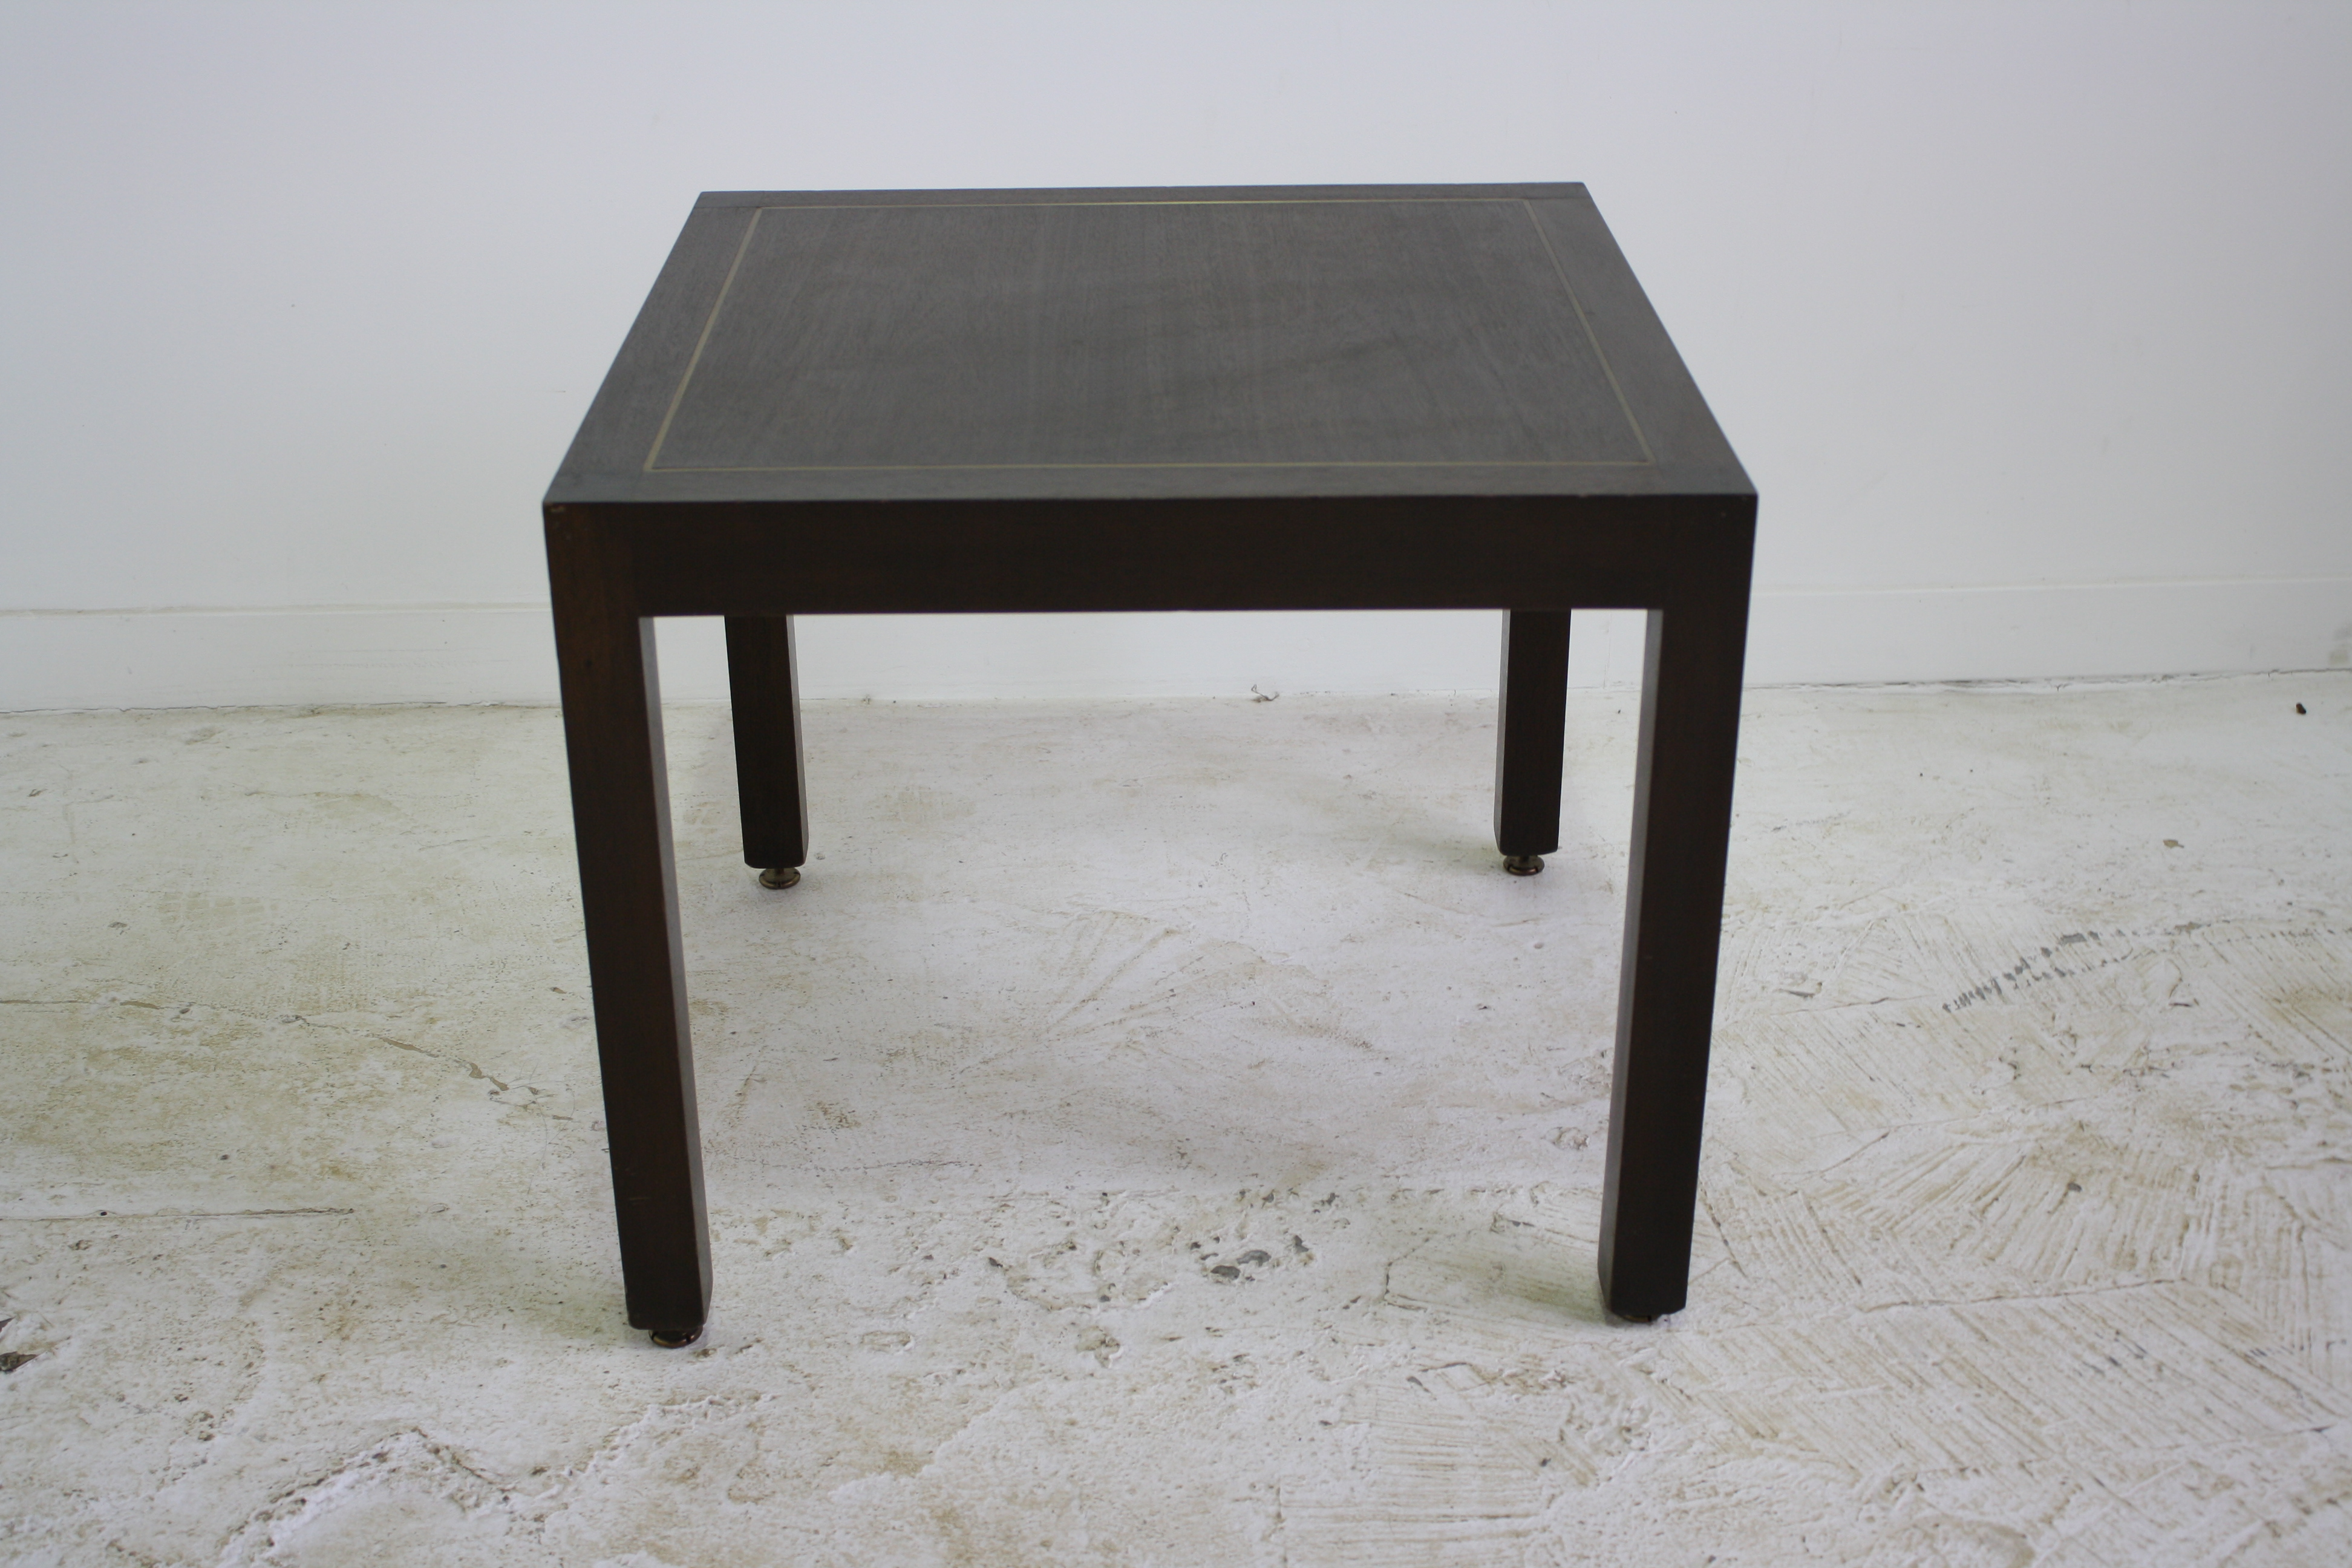 Delicieux A Parsons Side Table Designed By Edward Wormley For Dunbar In The 1960s.  This Mid